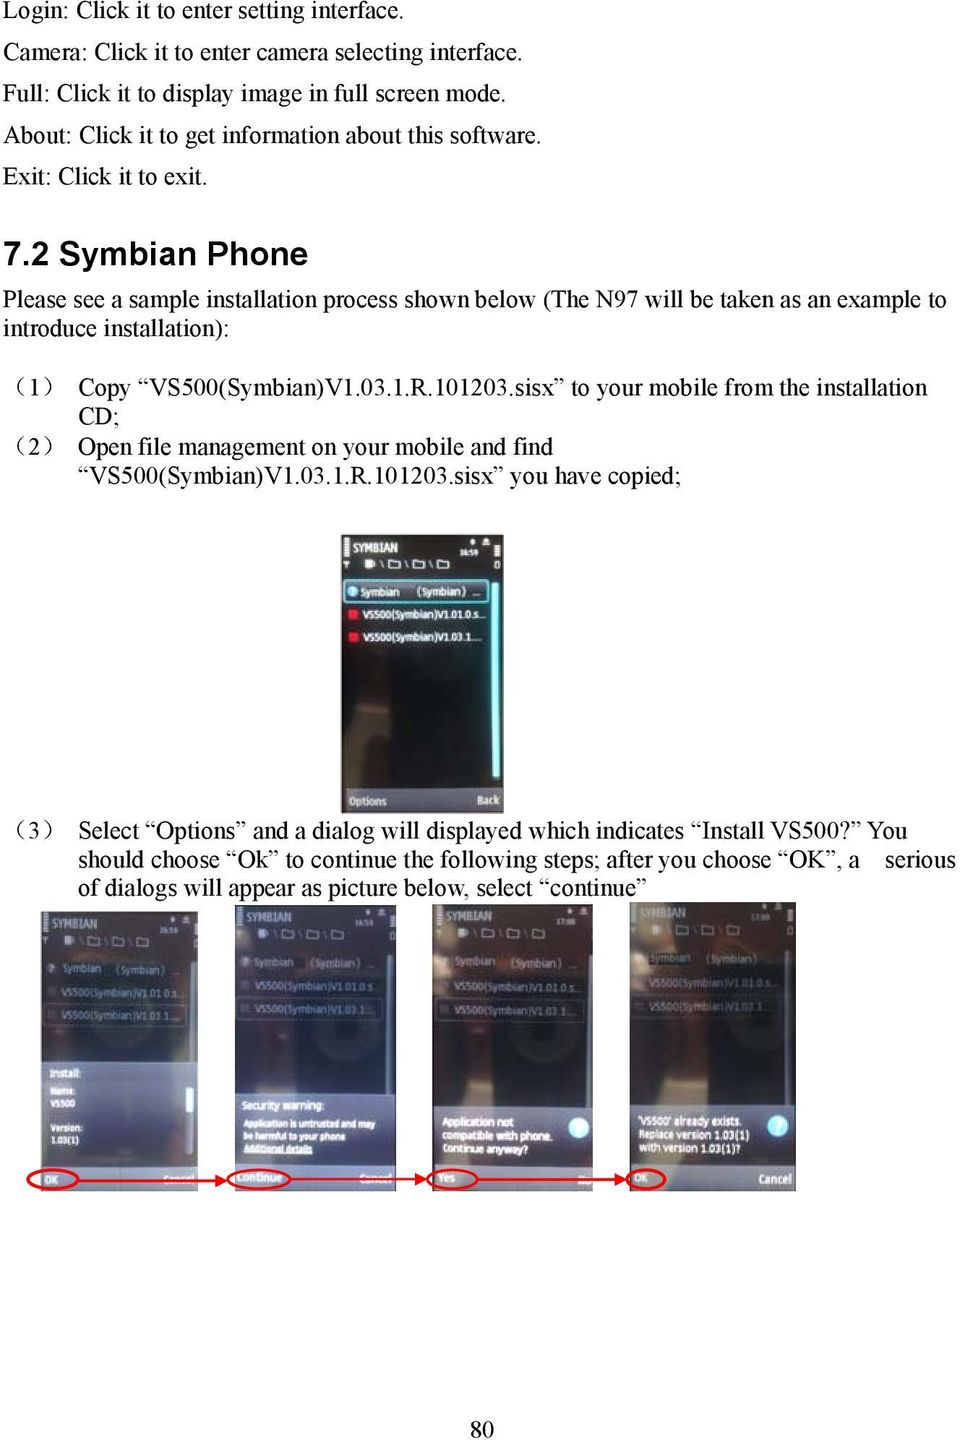 2 Symbian Phone Please see a sample installation process shown below (The N97 will be taken as an example to introduce installation): (1) Copy VS500(Symbian)V1.03.1.R.101203.